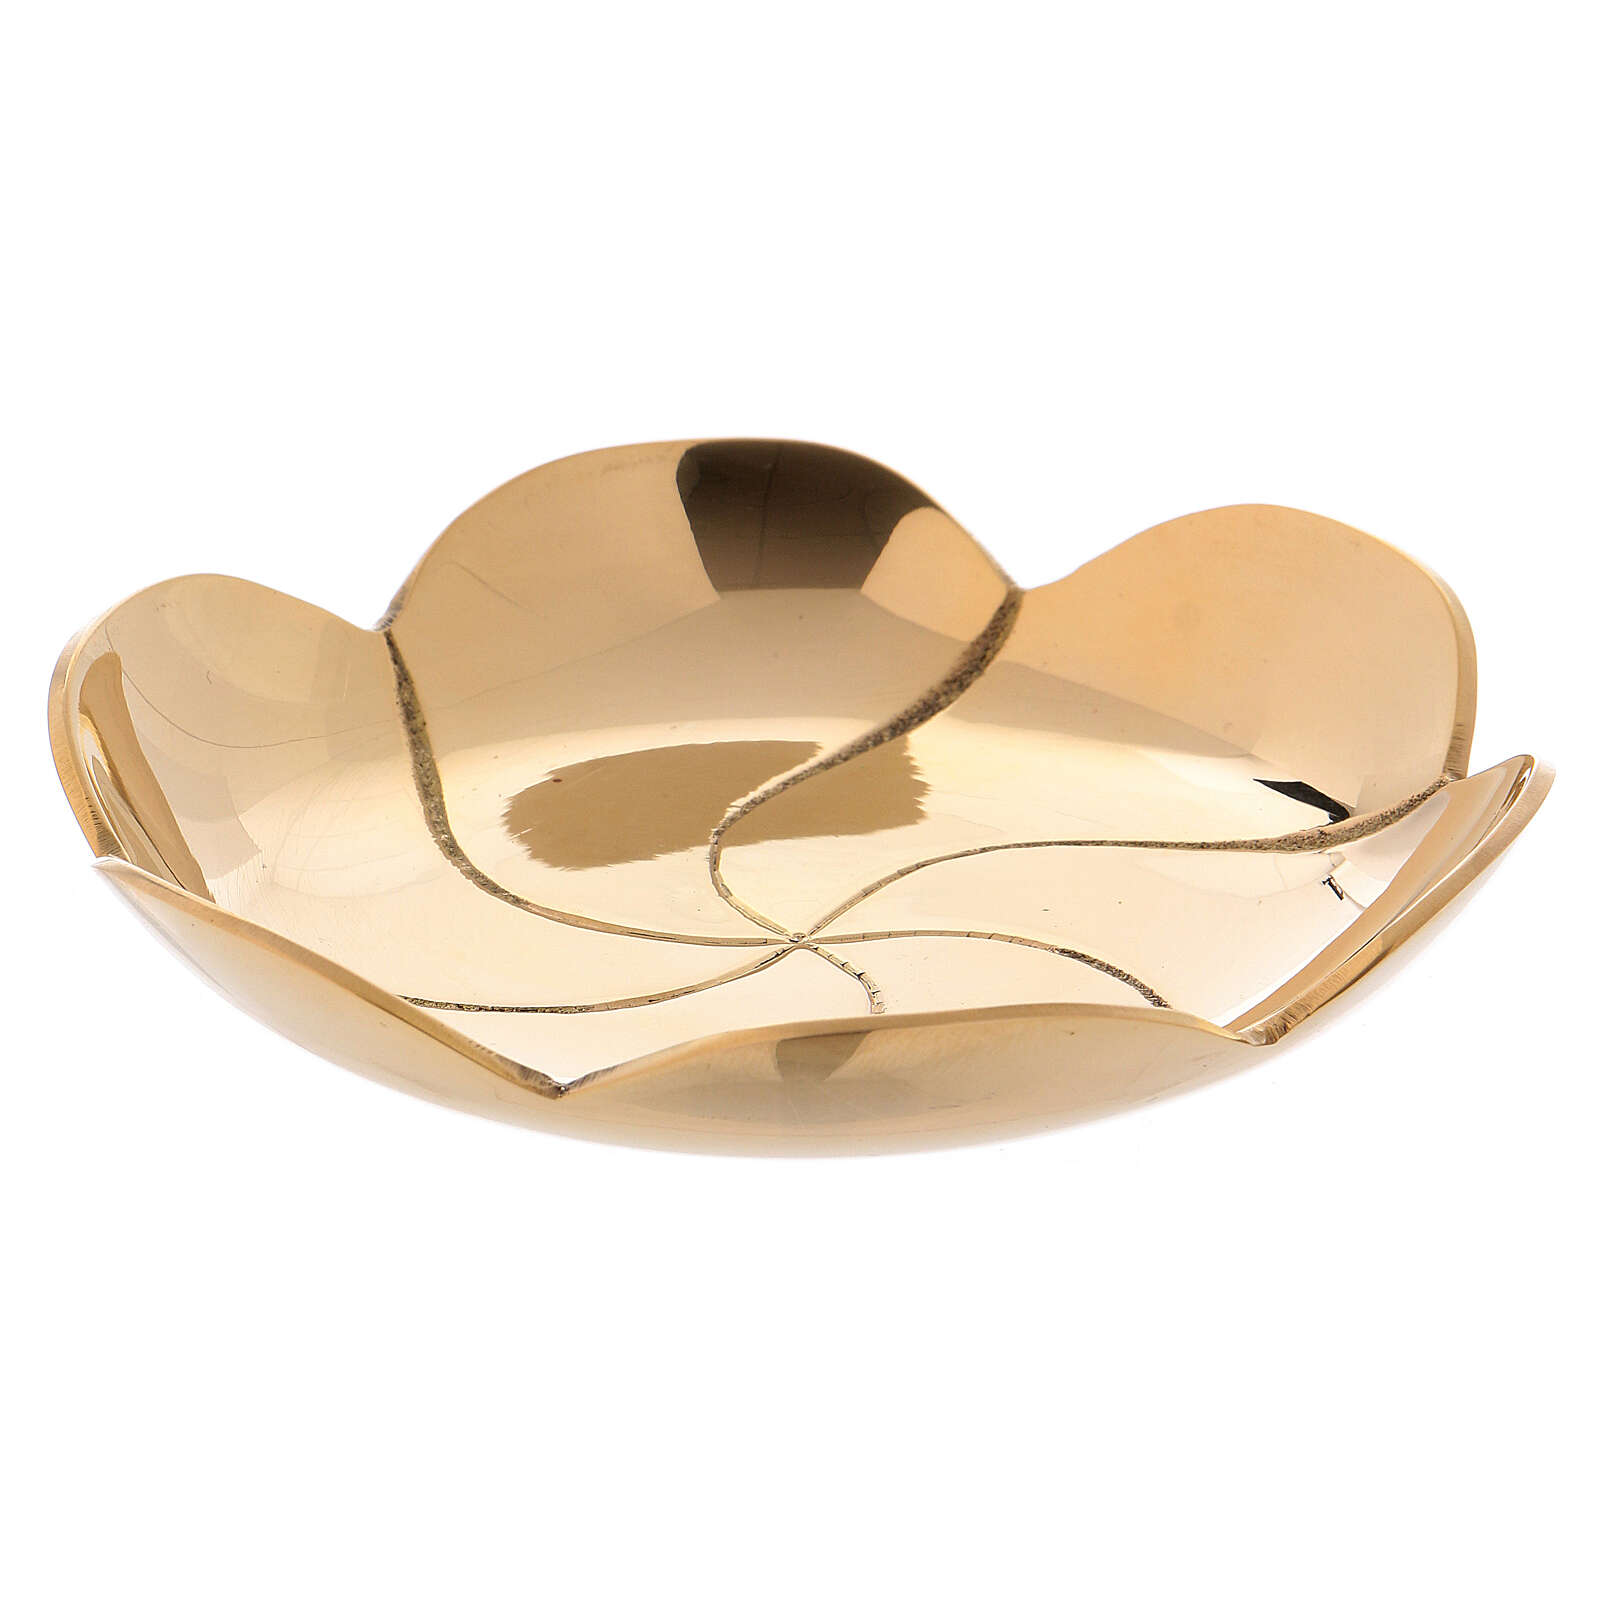 Saucer with a diameter of 9.5 cm made of shiny golden brass 3